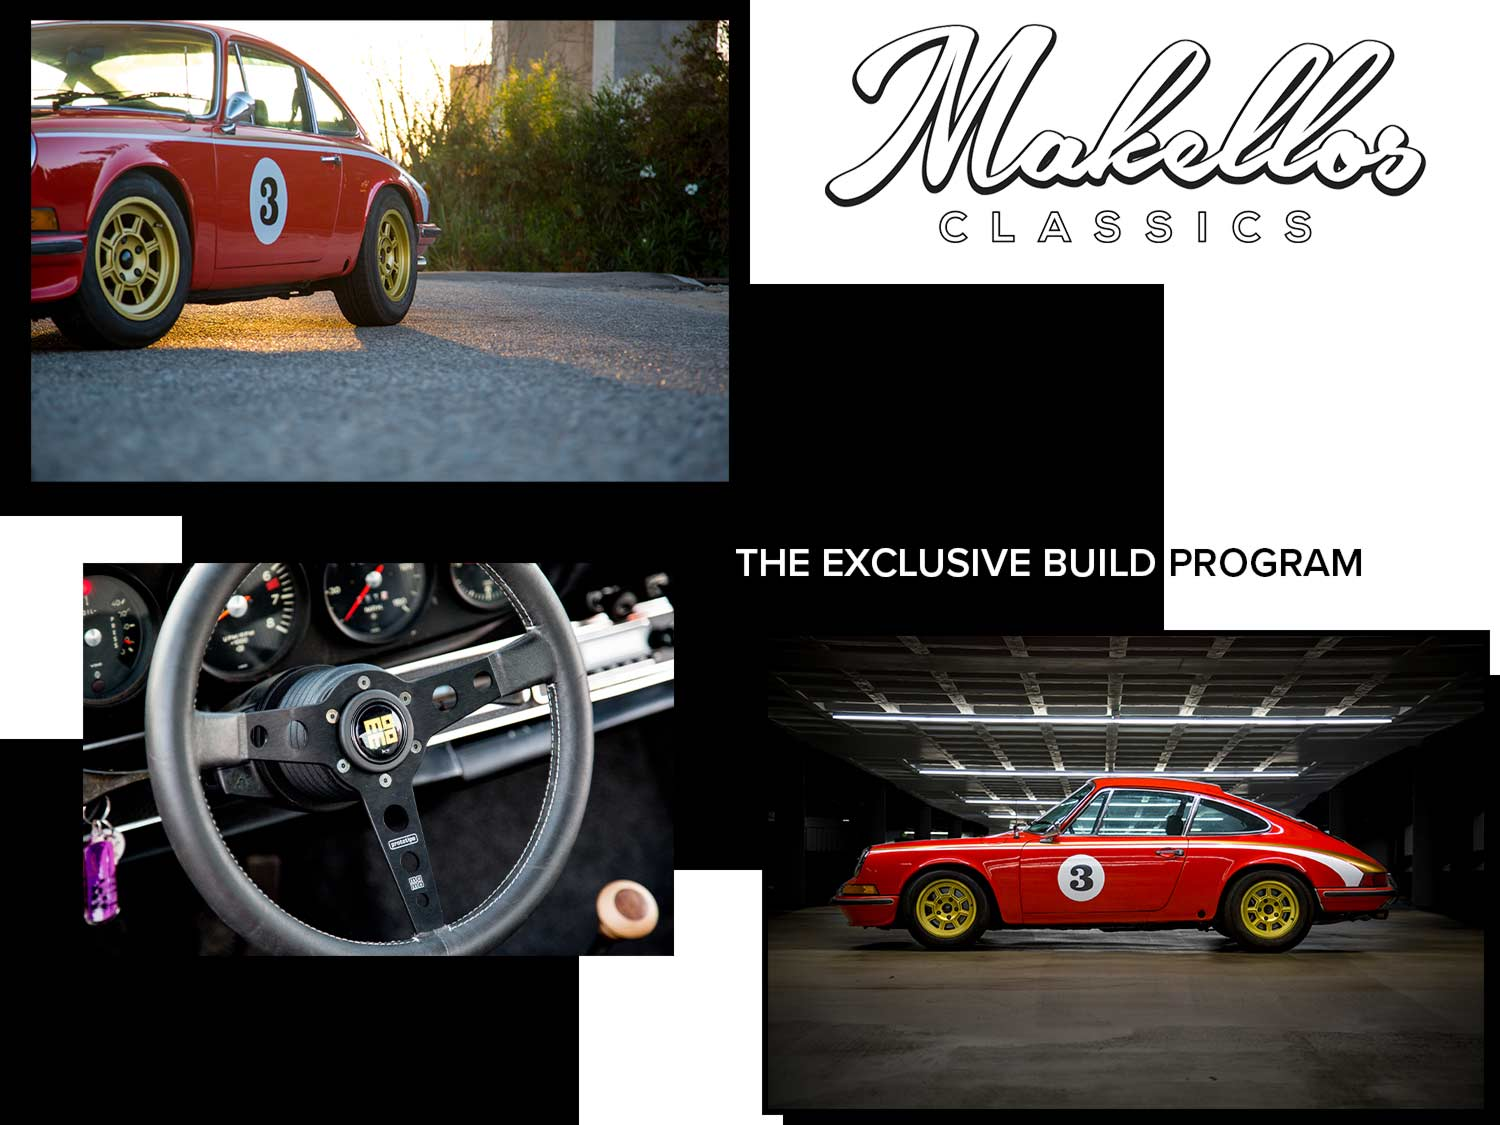 Makellos-Classics-Exclusive-Build-Program-Custom-Porsche.jpg